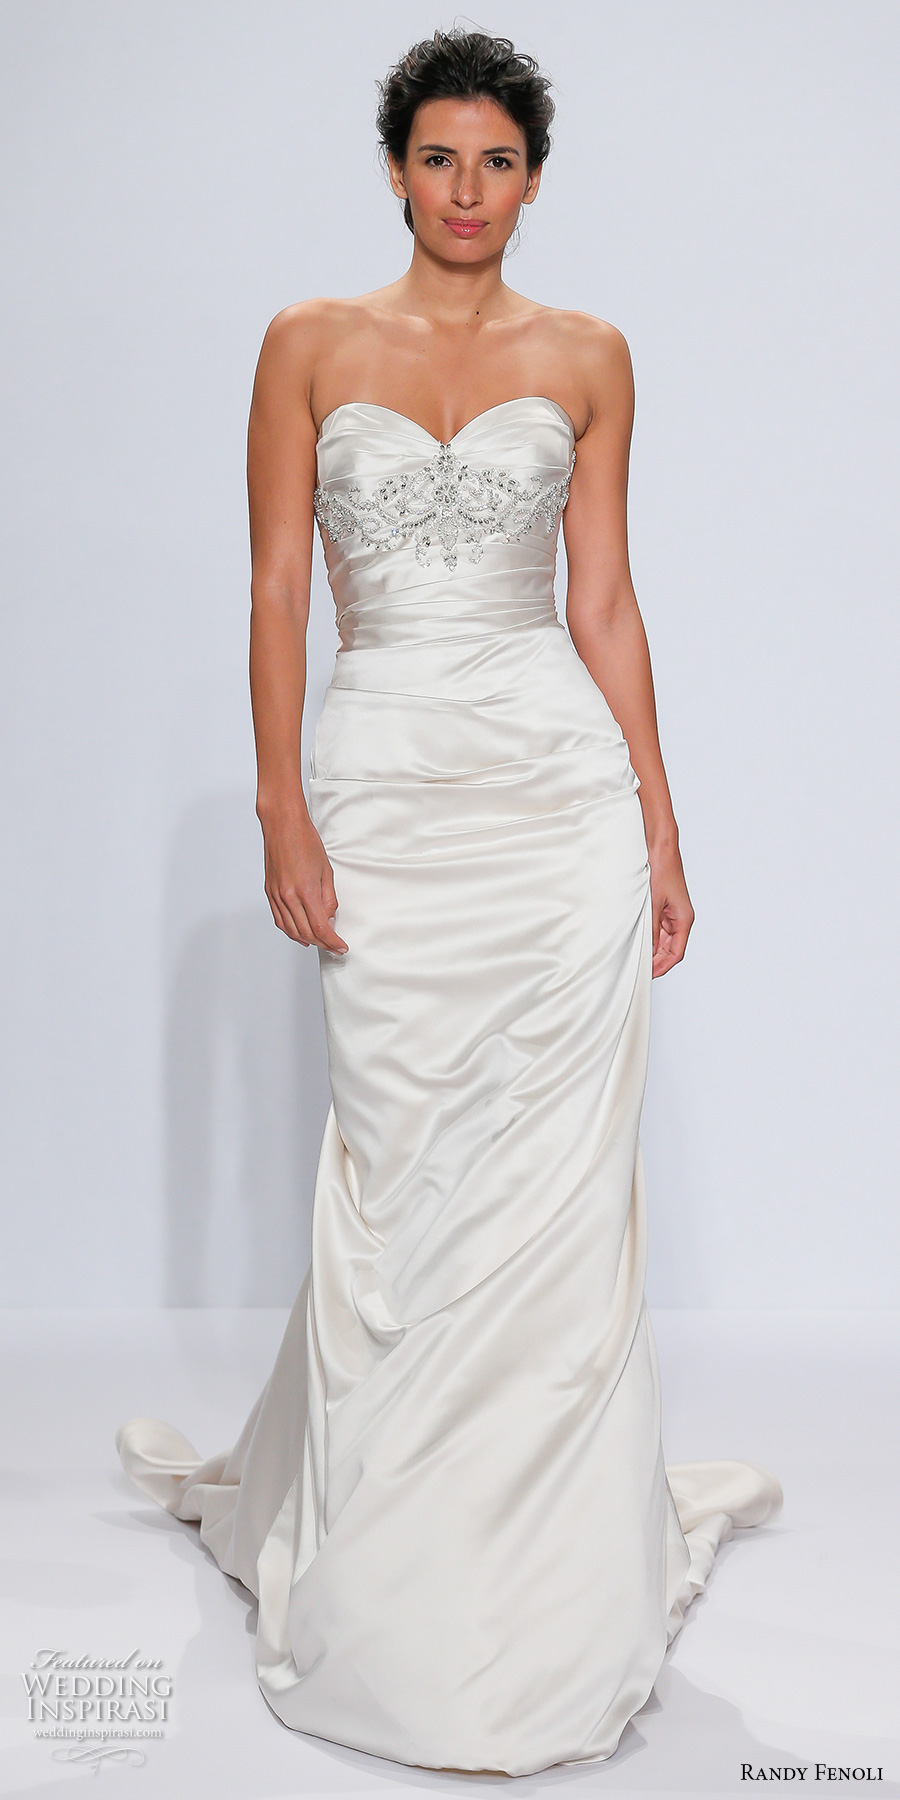 randy fenoli spring 2018 bridal strapless sweetheart neckline ruched bodice satin elegant sheath wedding dress corset back chapel train (17) mv